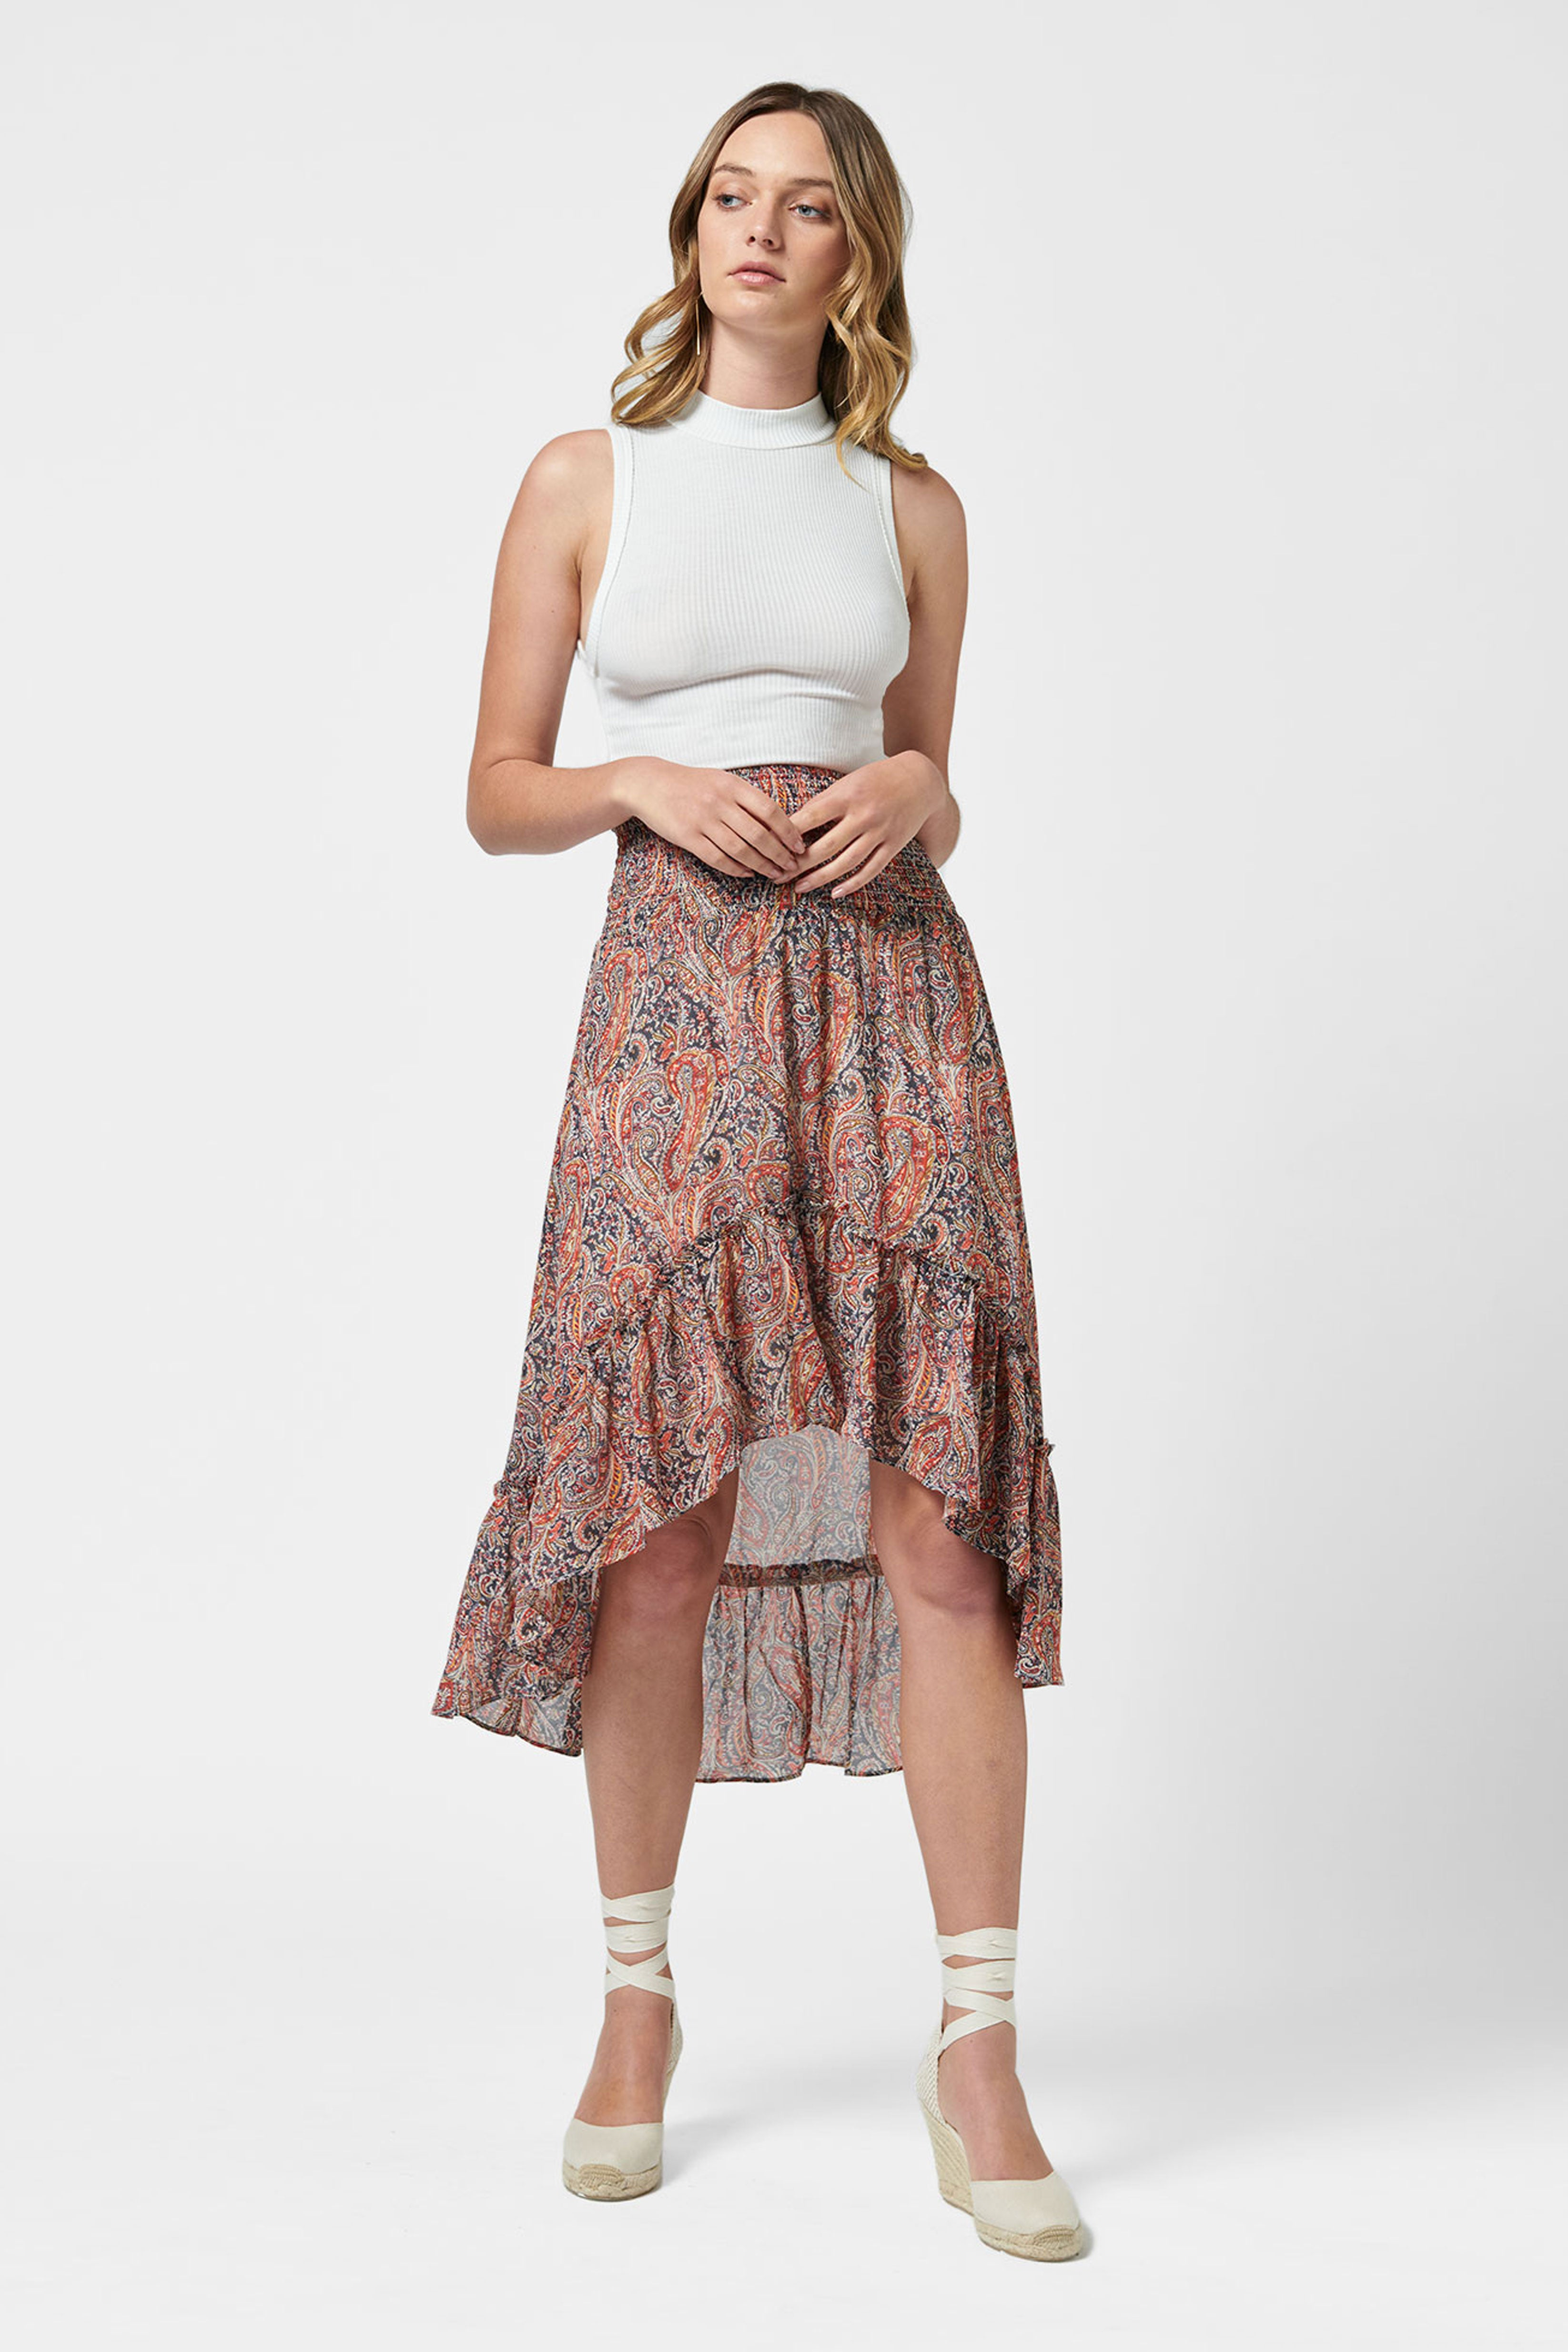 JEZEBEL SKIRT